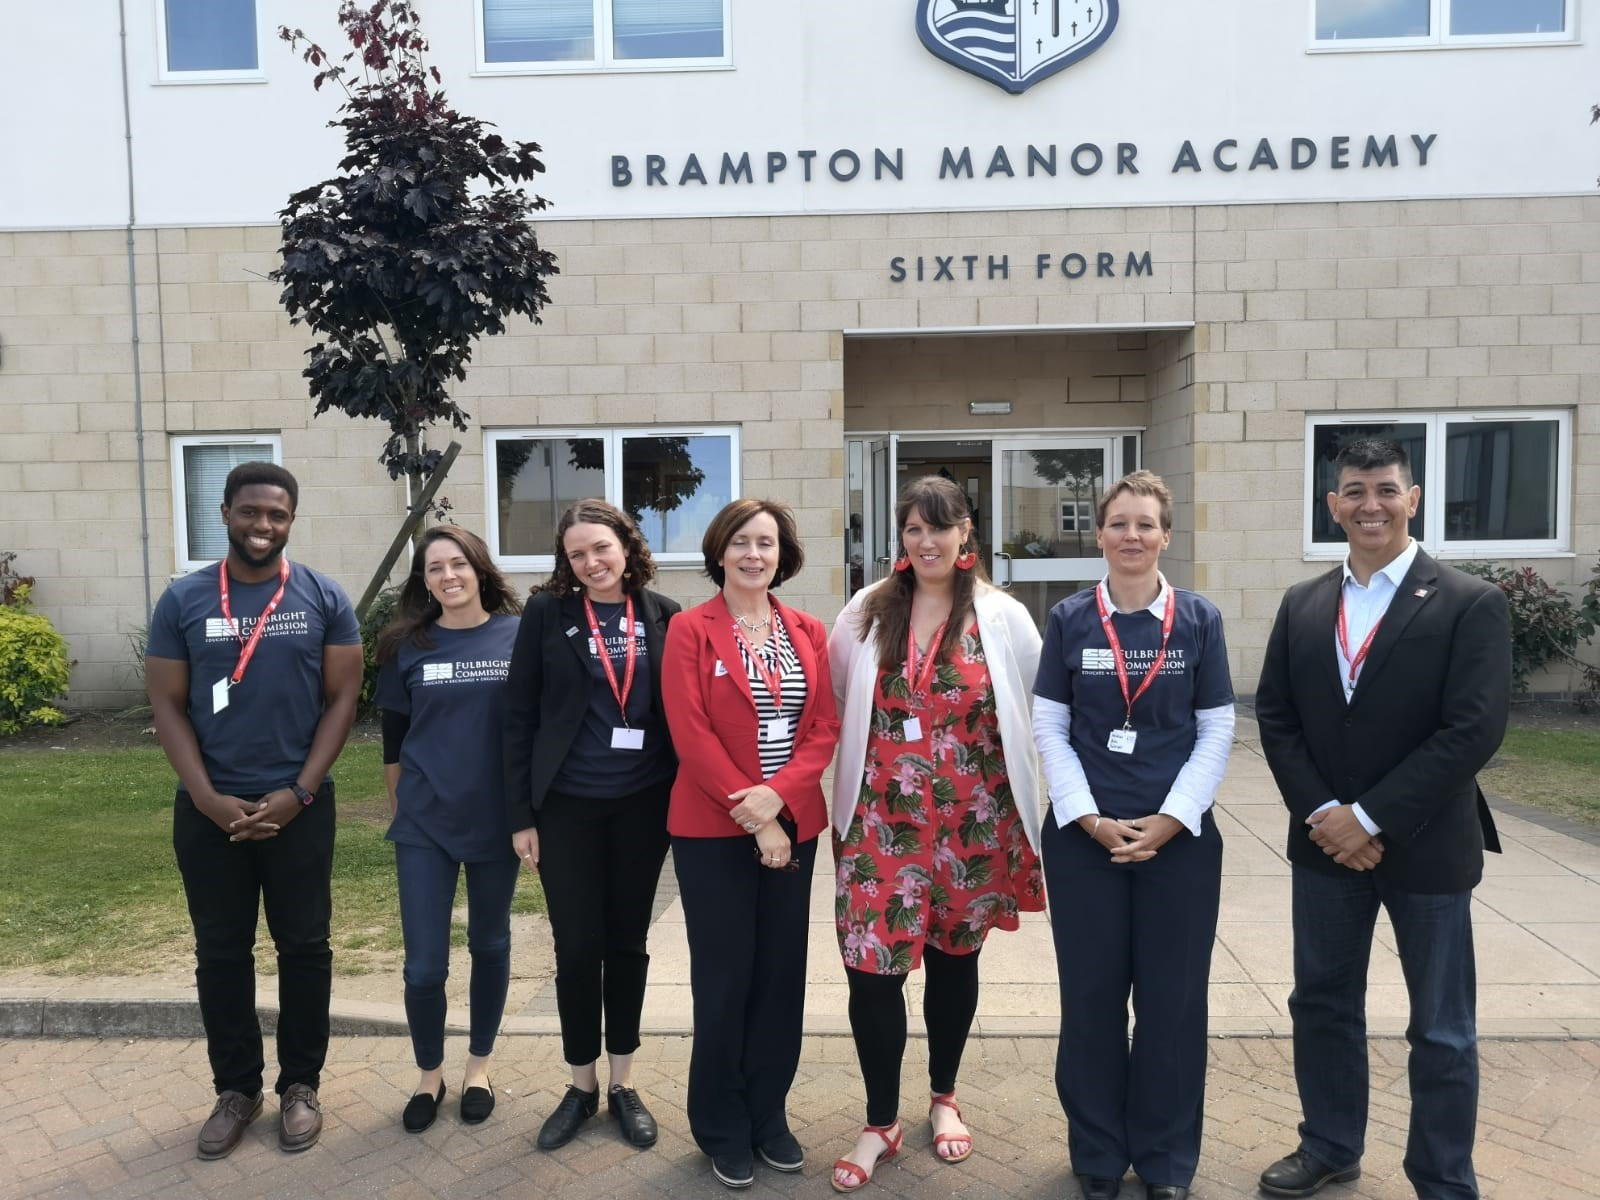 Fulbright staff and grantees at Brampton Manor Academy to help sixth form students with interview practice, spring 2018